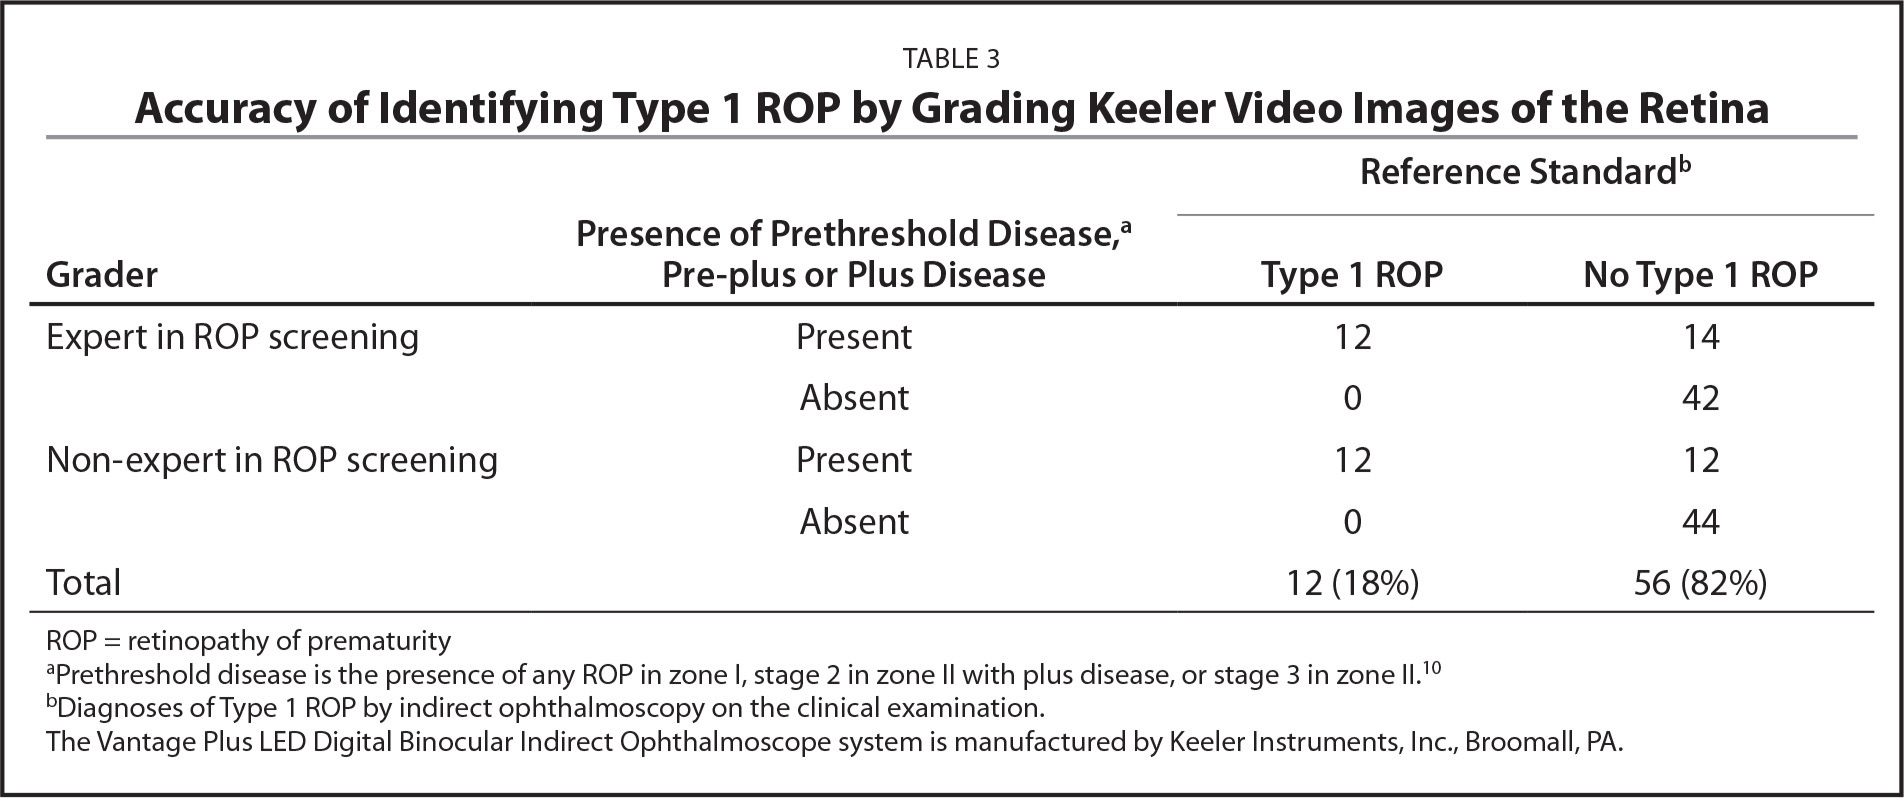 Accuracy of Identifying Type 1 ROP by Grading Keeler Video Images of the Retina